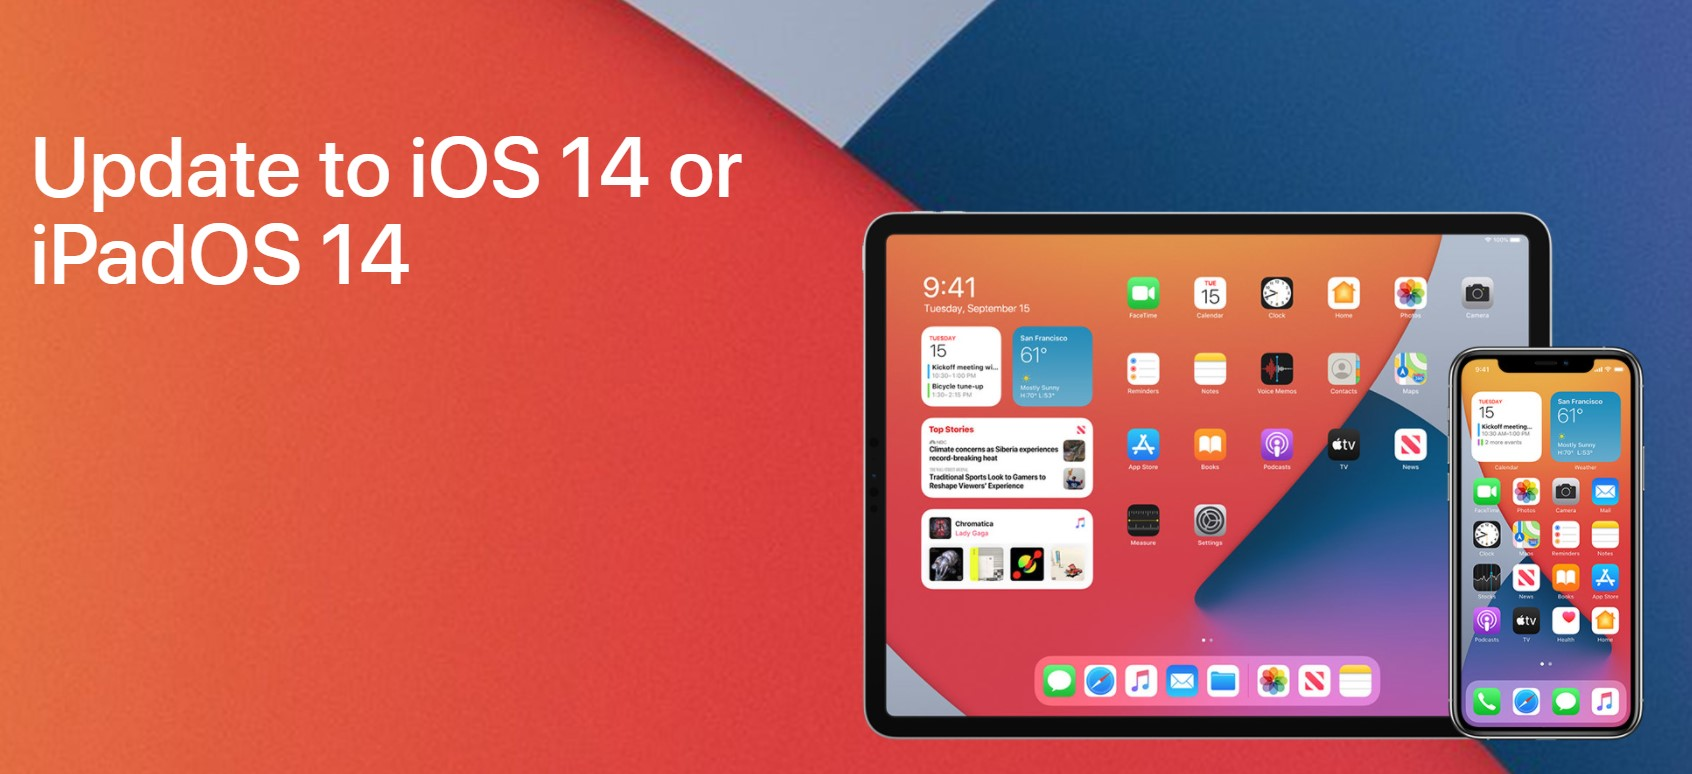 How to update to iOS 14 or iPadOS 14 - Download iOS 14, iPad OS 14, and tvOS 14 IPSW